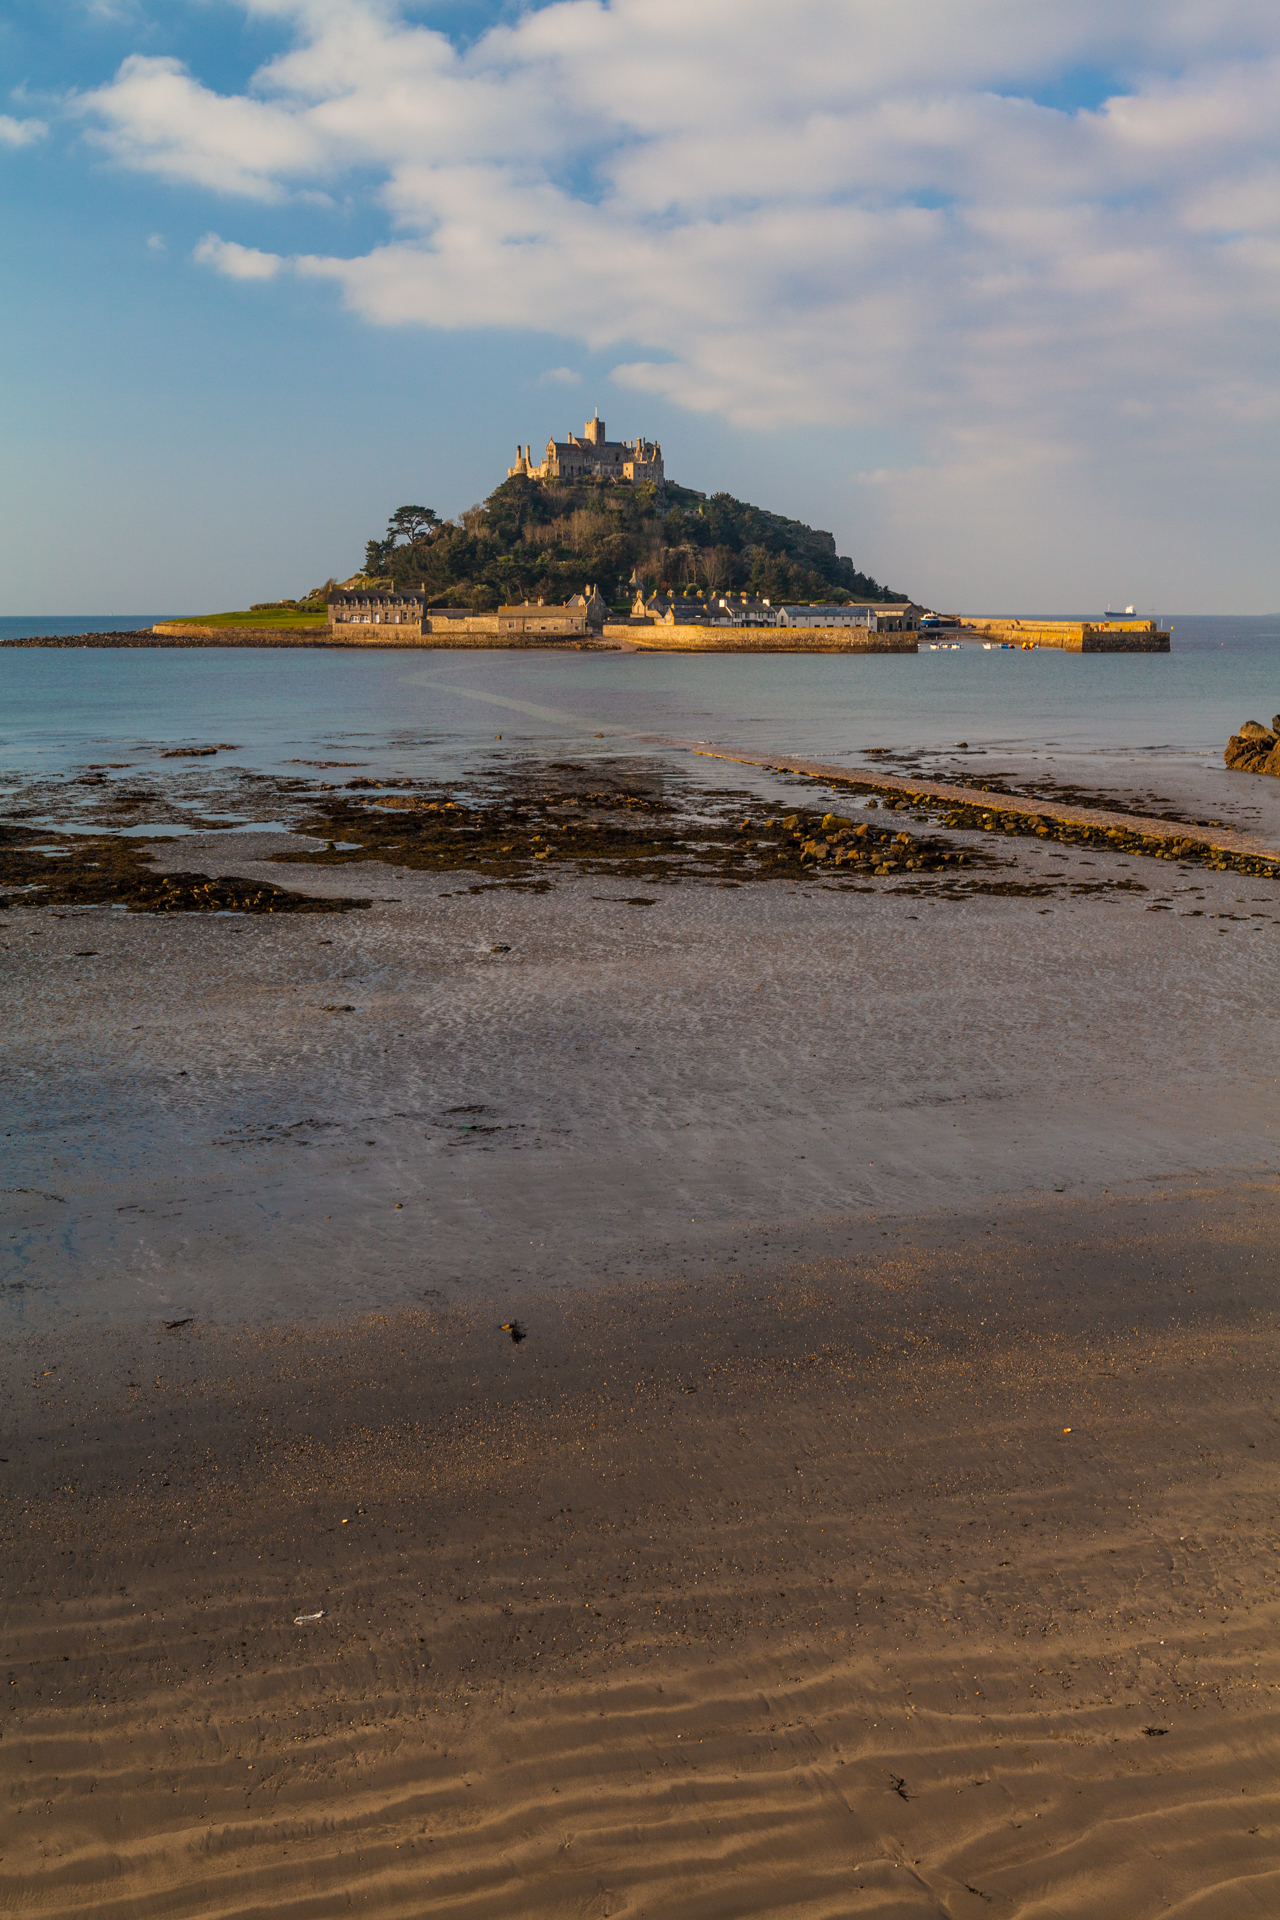 Landscape at Sant Michael's Mount, Cornwall, England without foreground interest